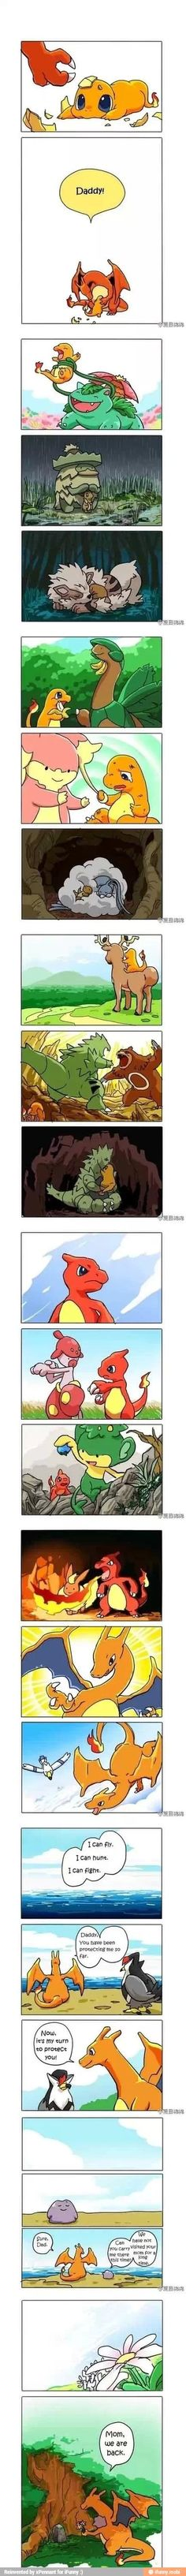 wait there was a comic with charmander growing up with a venusaur, was that the same one